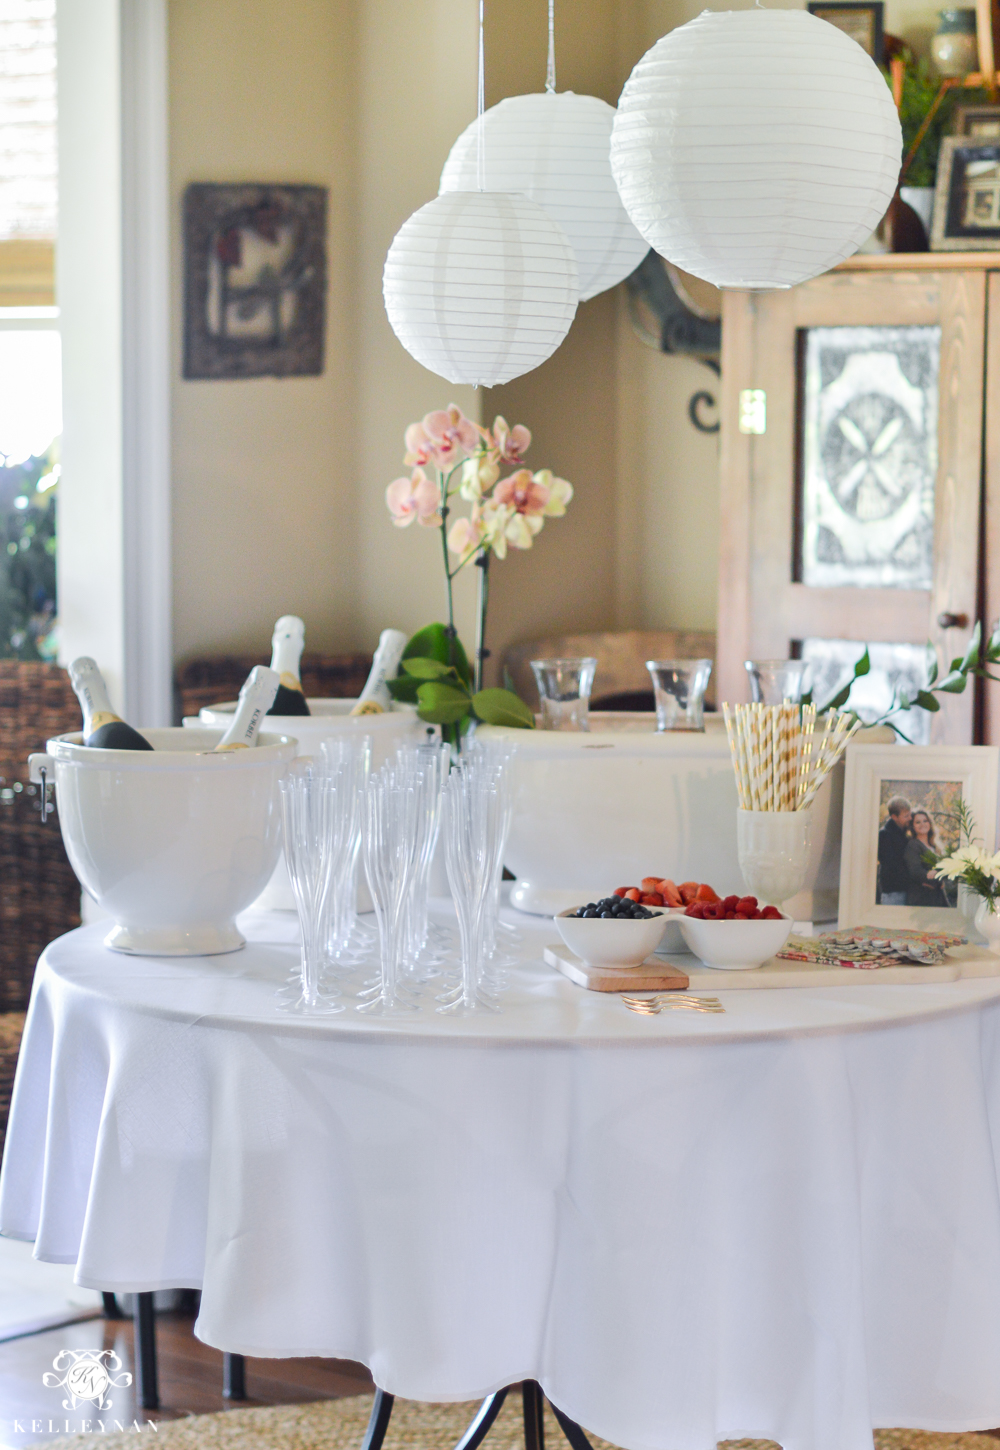 southern garden party bridal shower ideas mimosa bar with garden lanters